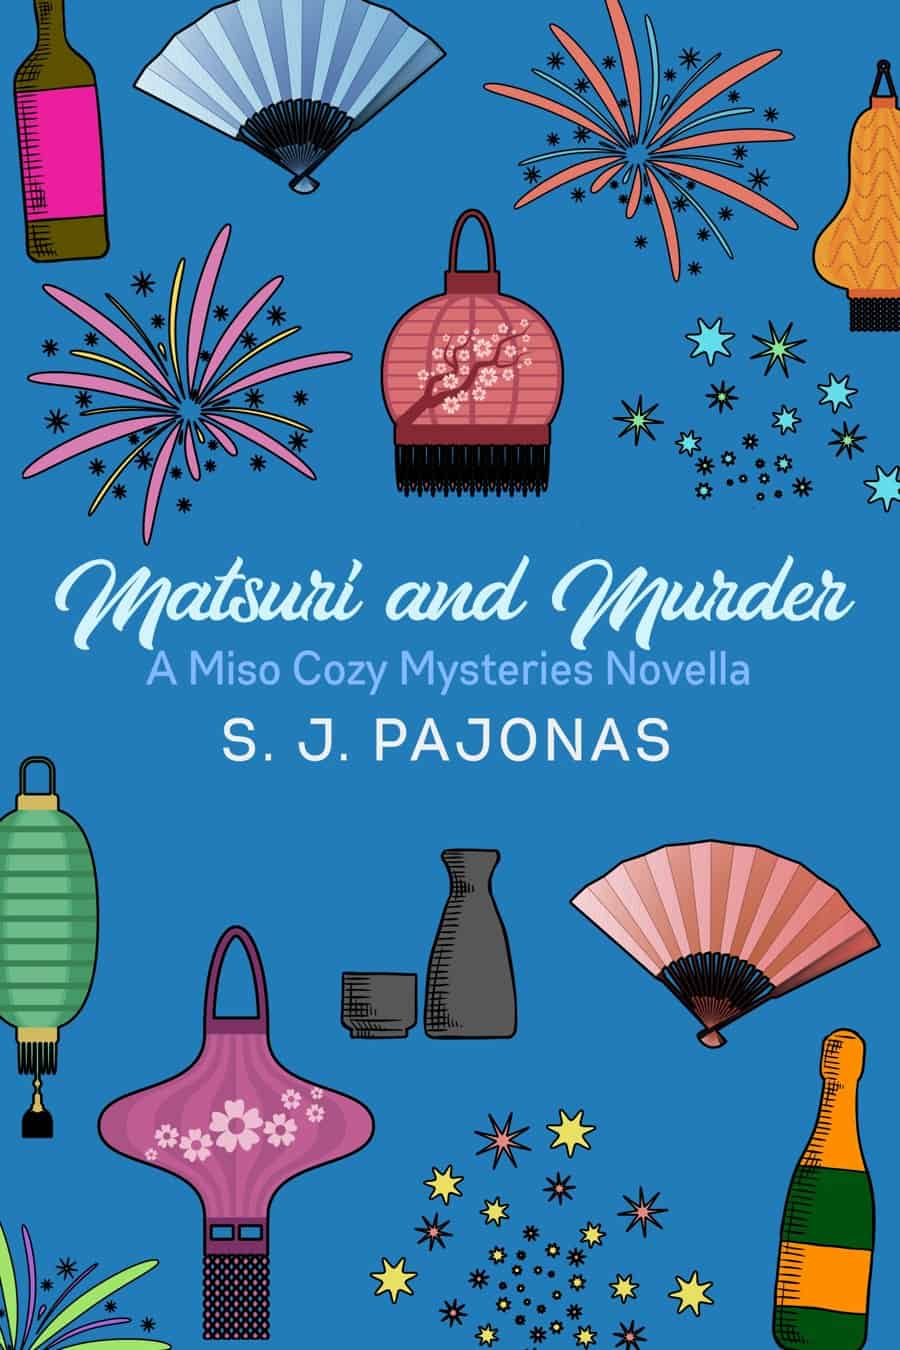 MATSURI AND MURDER is now available on Amazon, iBooks, Nook, Kobo, Google Play, and Direct! Get this Miso Cozy Mysteries novella and follow Mei, Kayo, and Akiko on a weekend away to Kubako. Too bad they get caught up in a murder case while they're there!